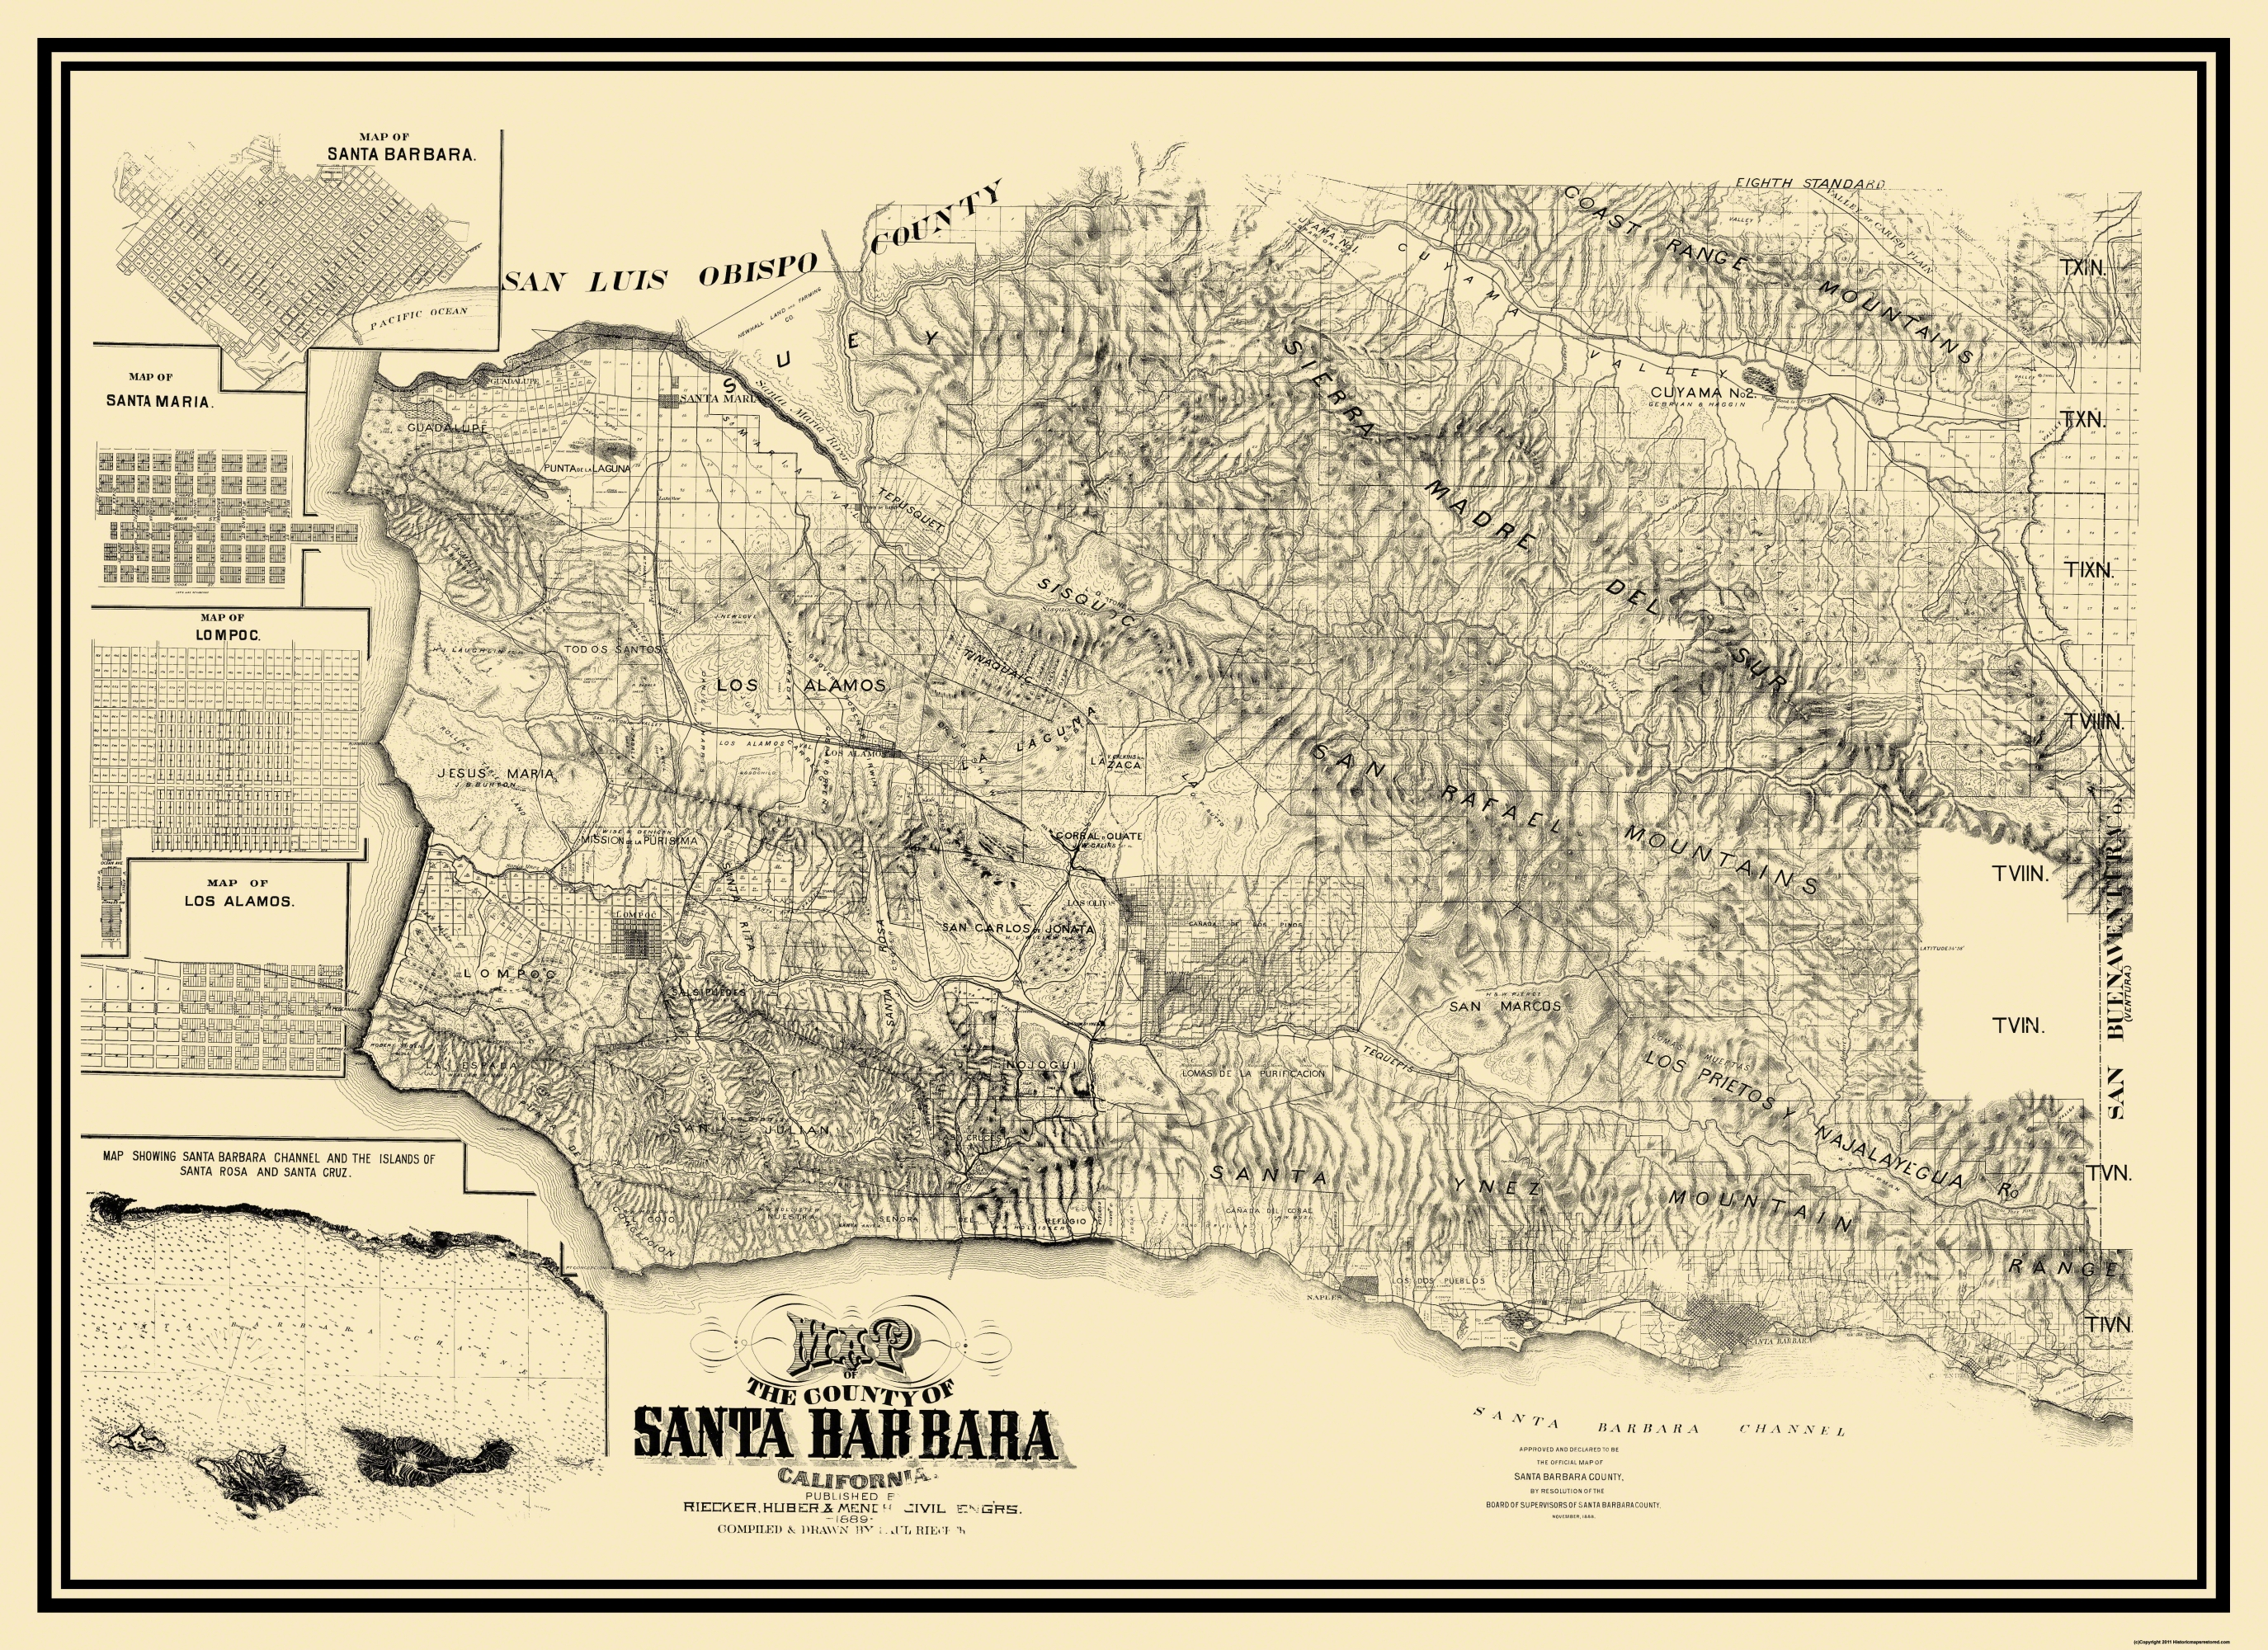 Old County Map Santa Barbara California Landowner - Santa barbara on us map